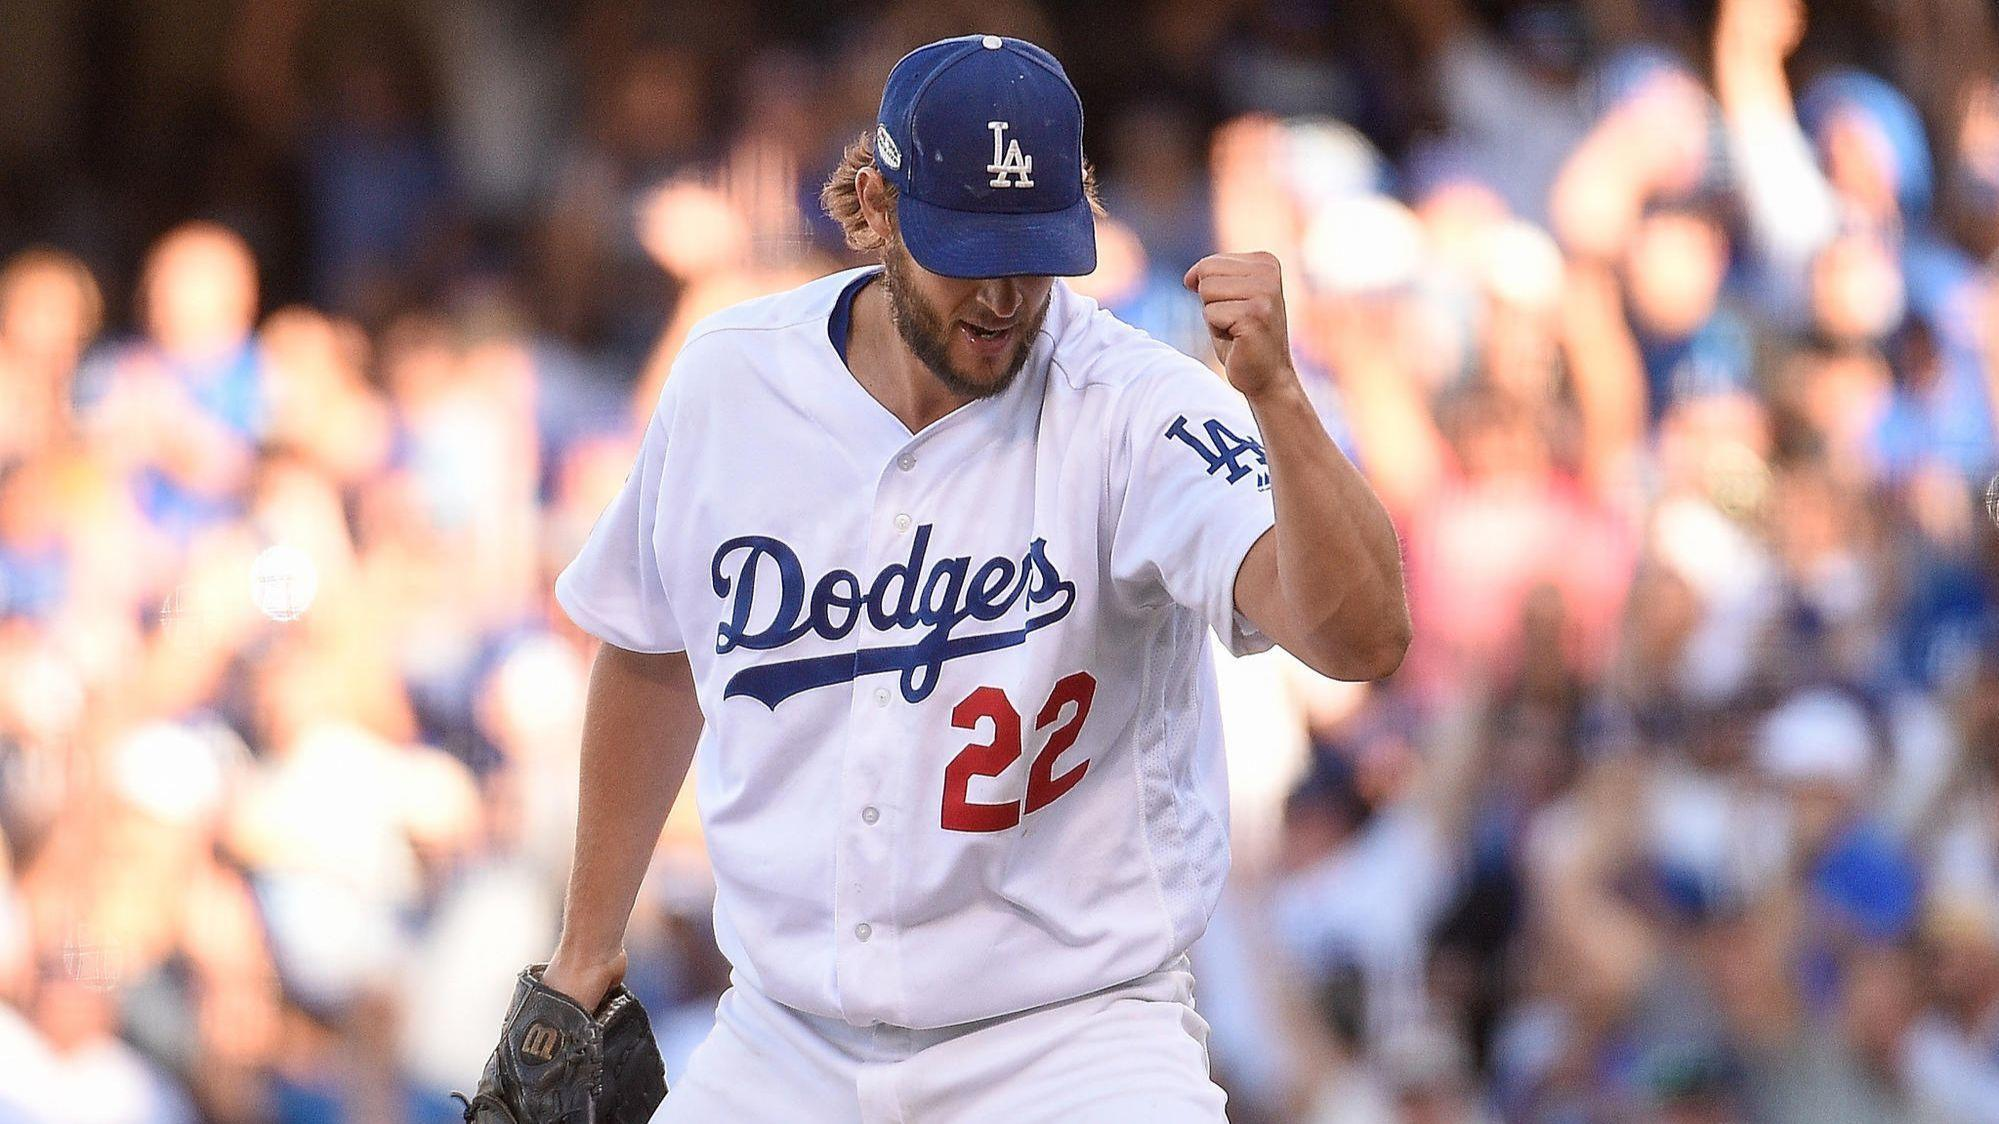 Dodgers step closer to World Series, top Brewers in NLDS Game 5 behind dominant Clayton Kershaw